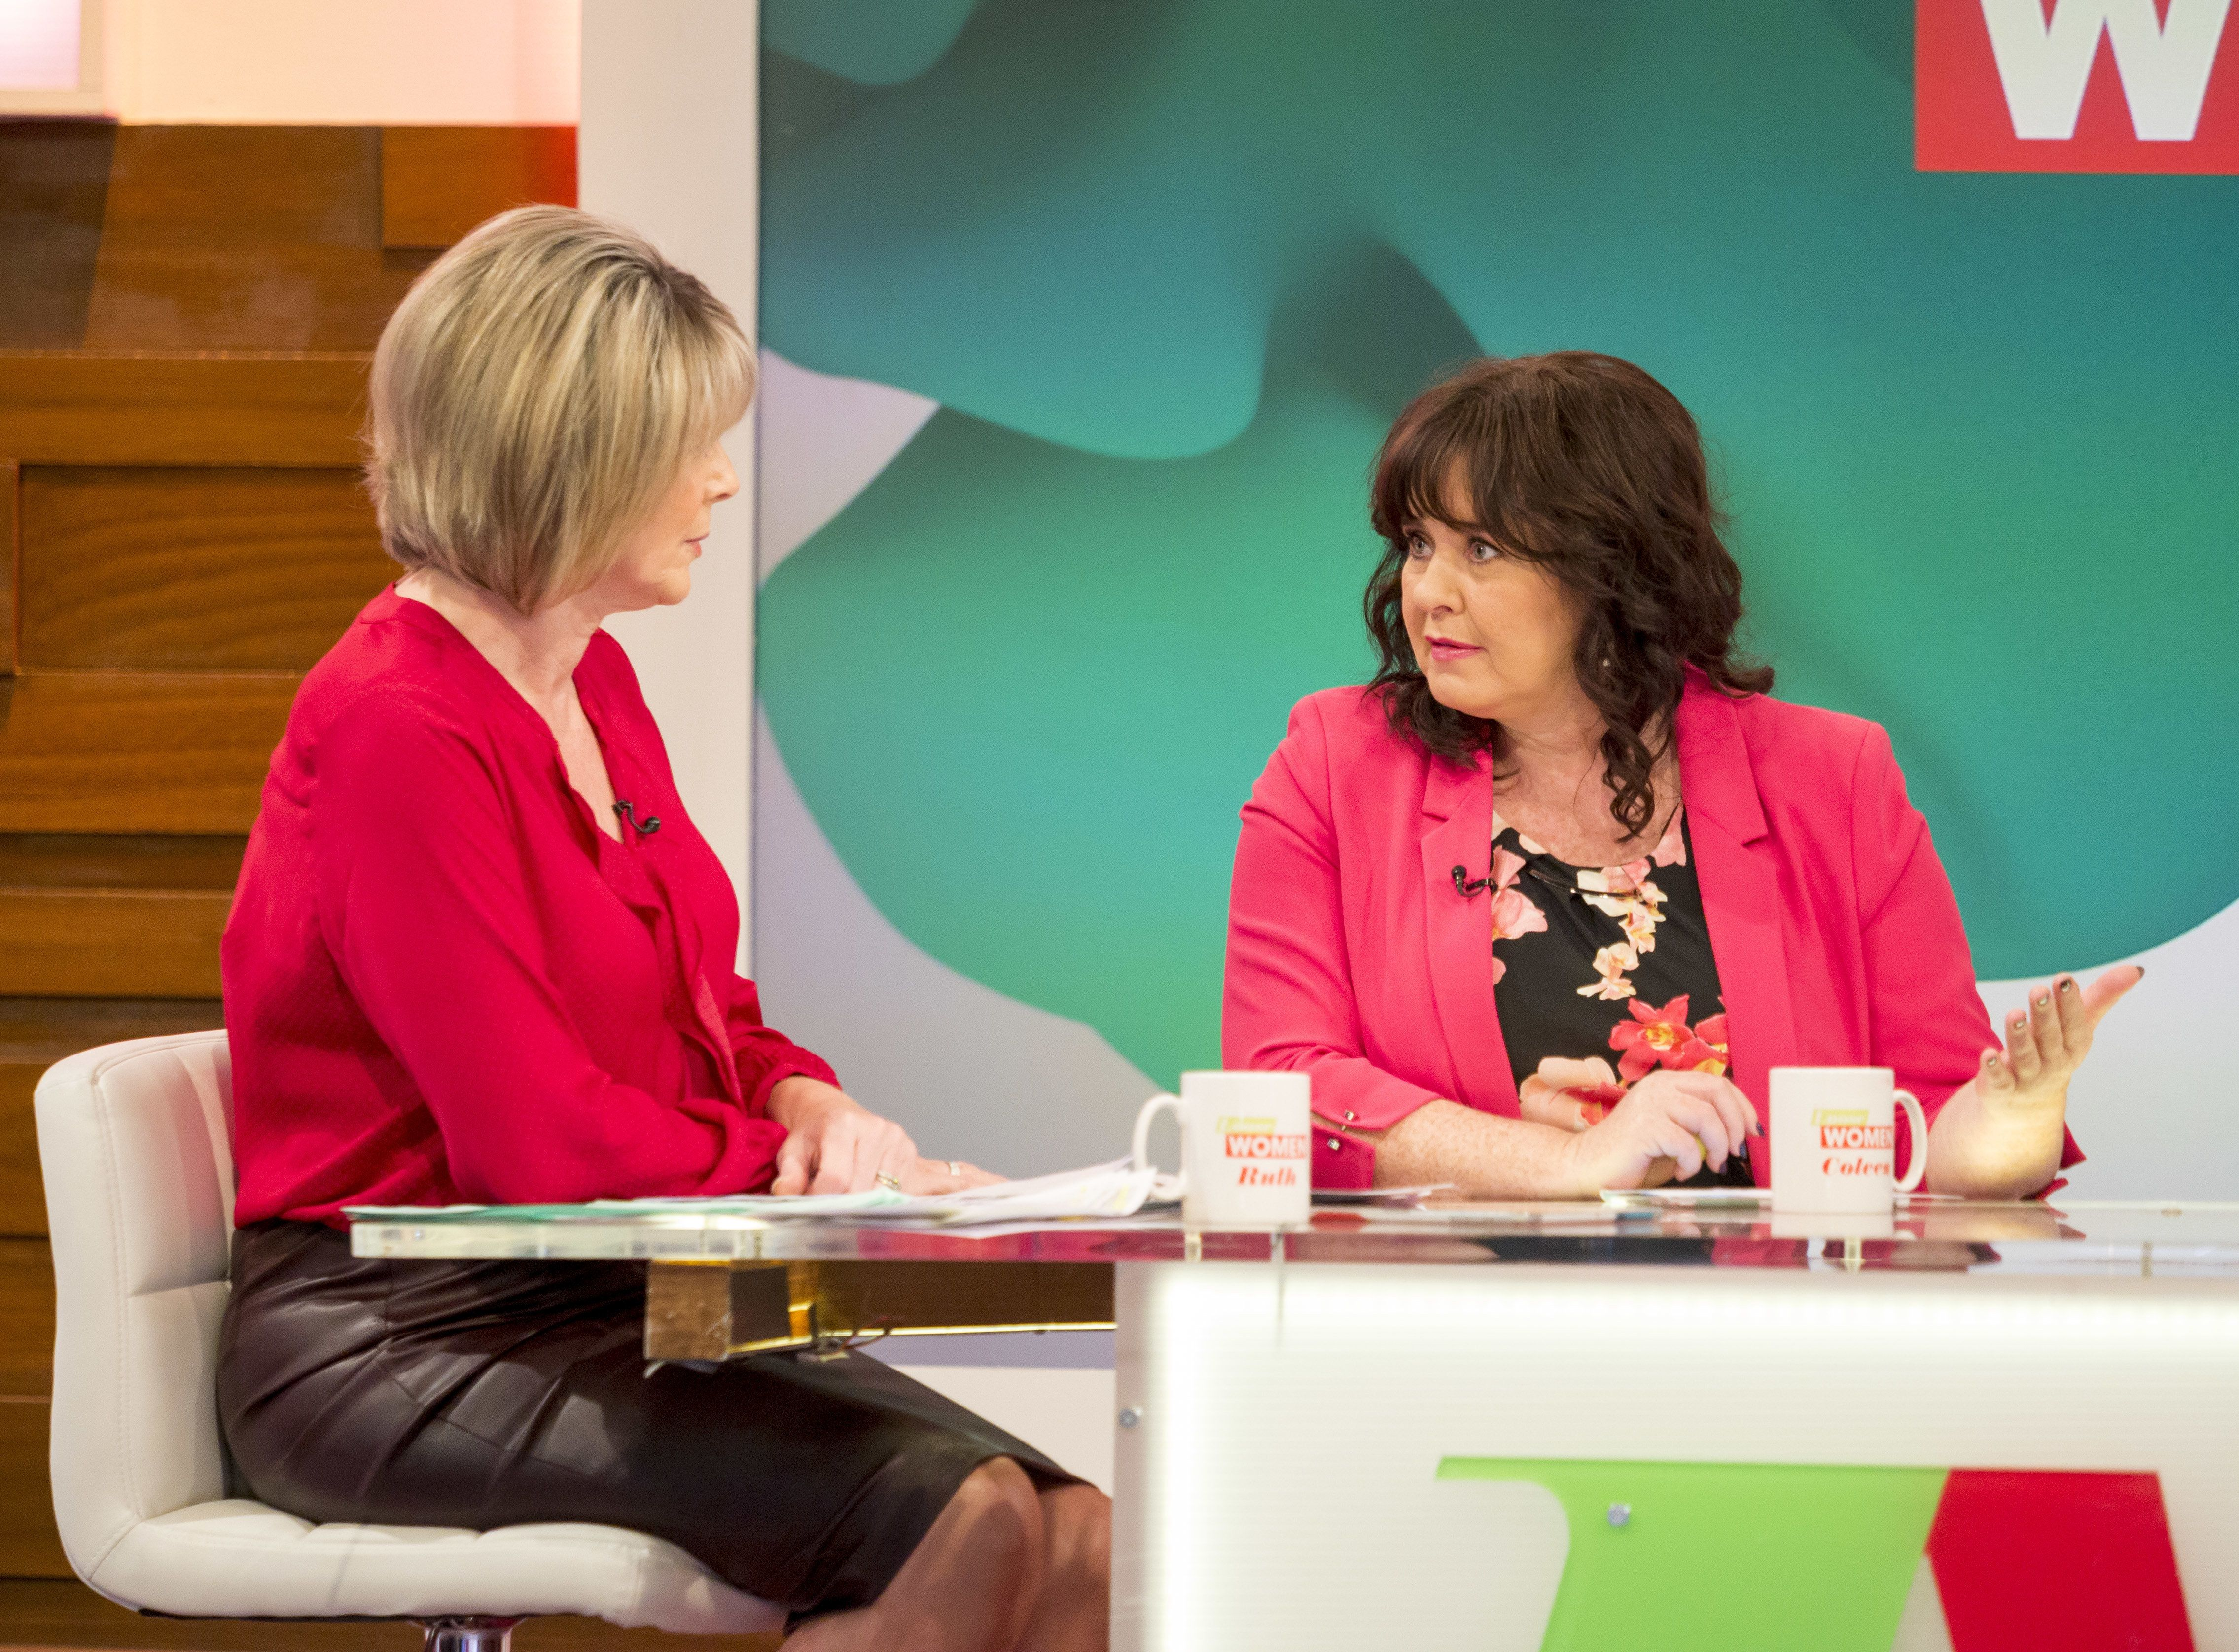 Coleen Nolan Slams 'Cruel' 'Strictly Come Dancing' Judges Over Ruth Langsford